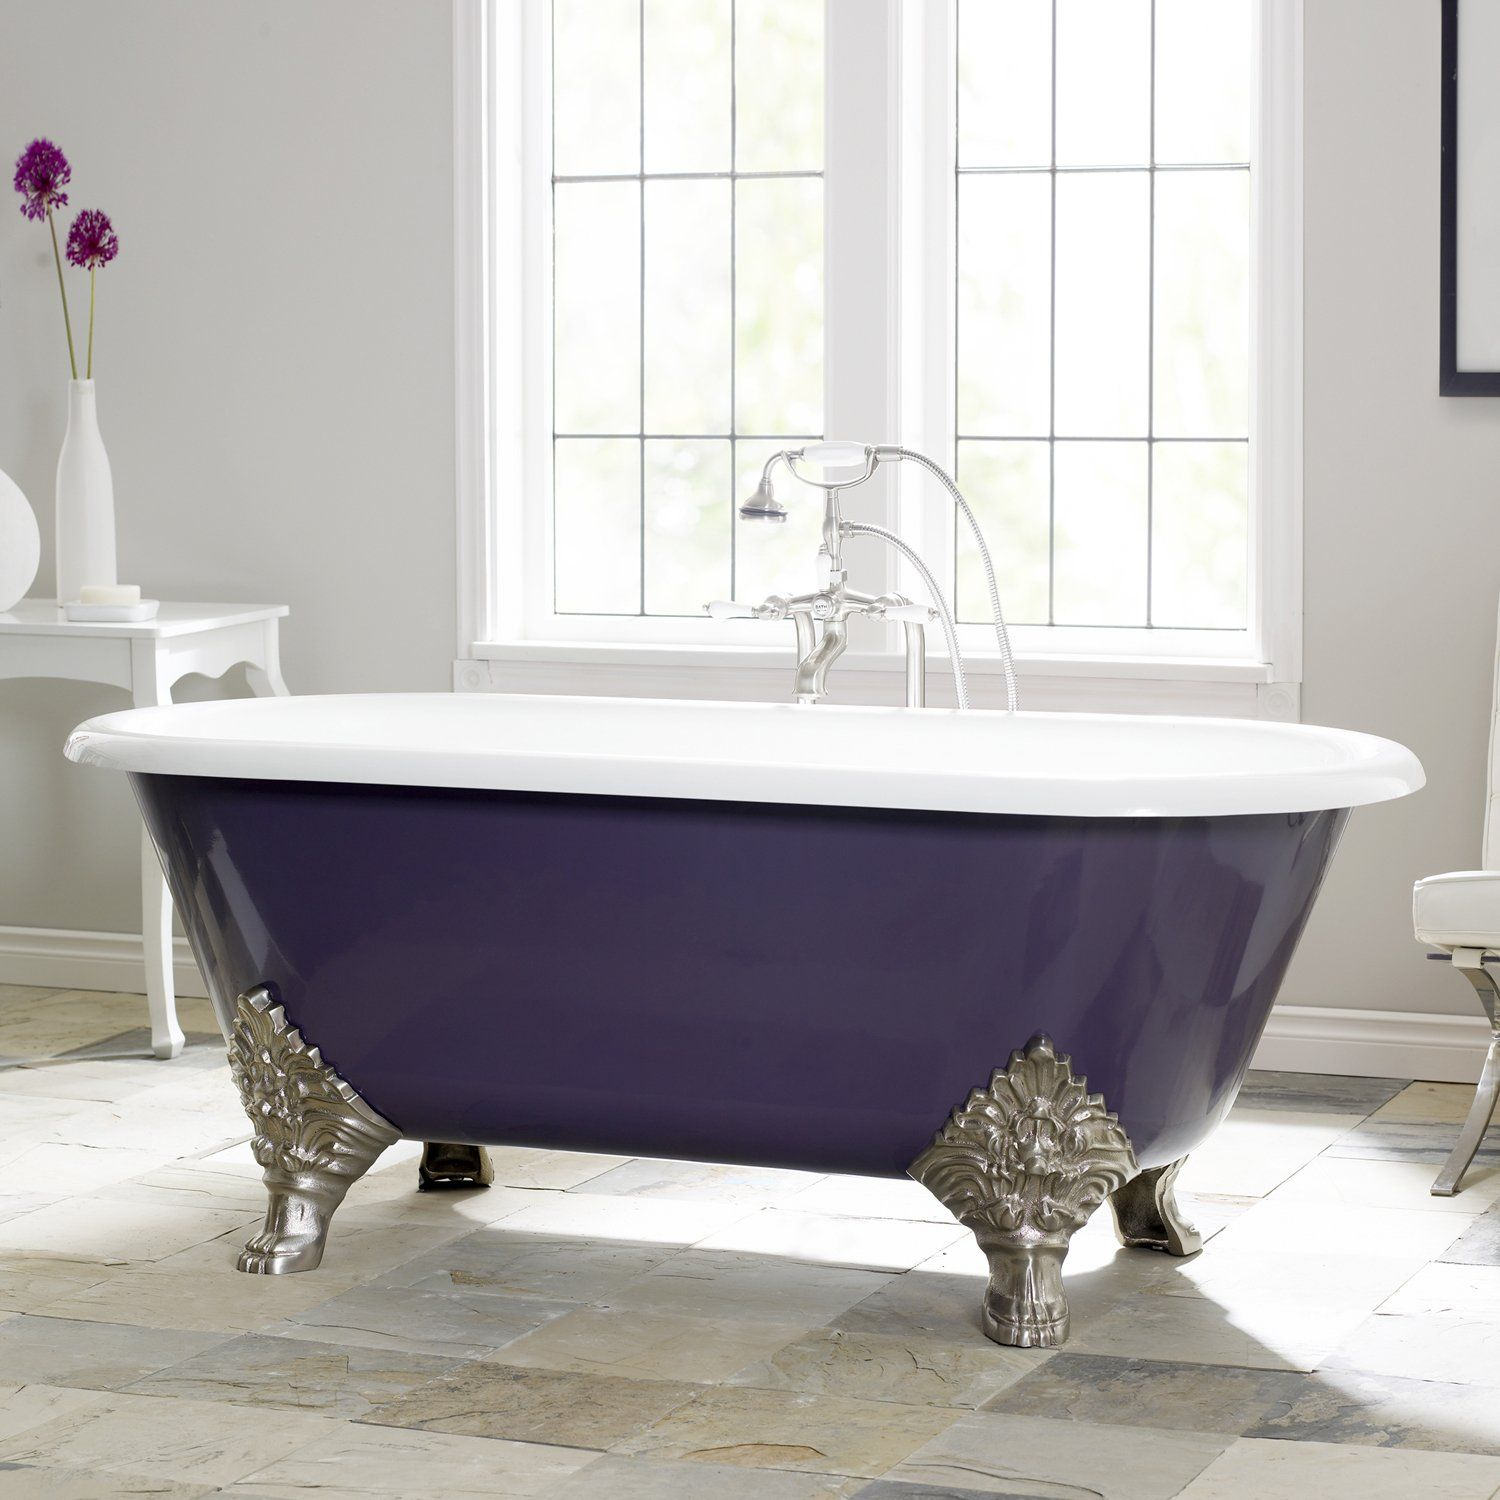 Classic Clawfoot Cheviot 216 Carlton Soaking Tub with a bold purple ...